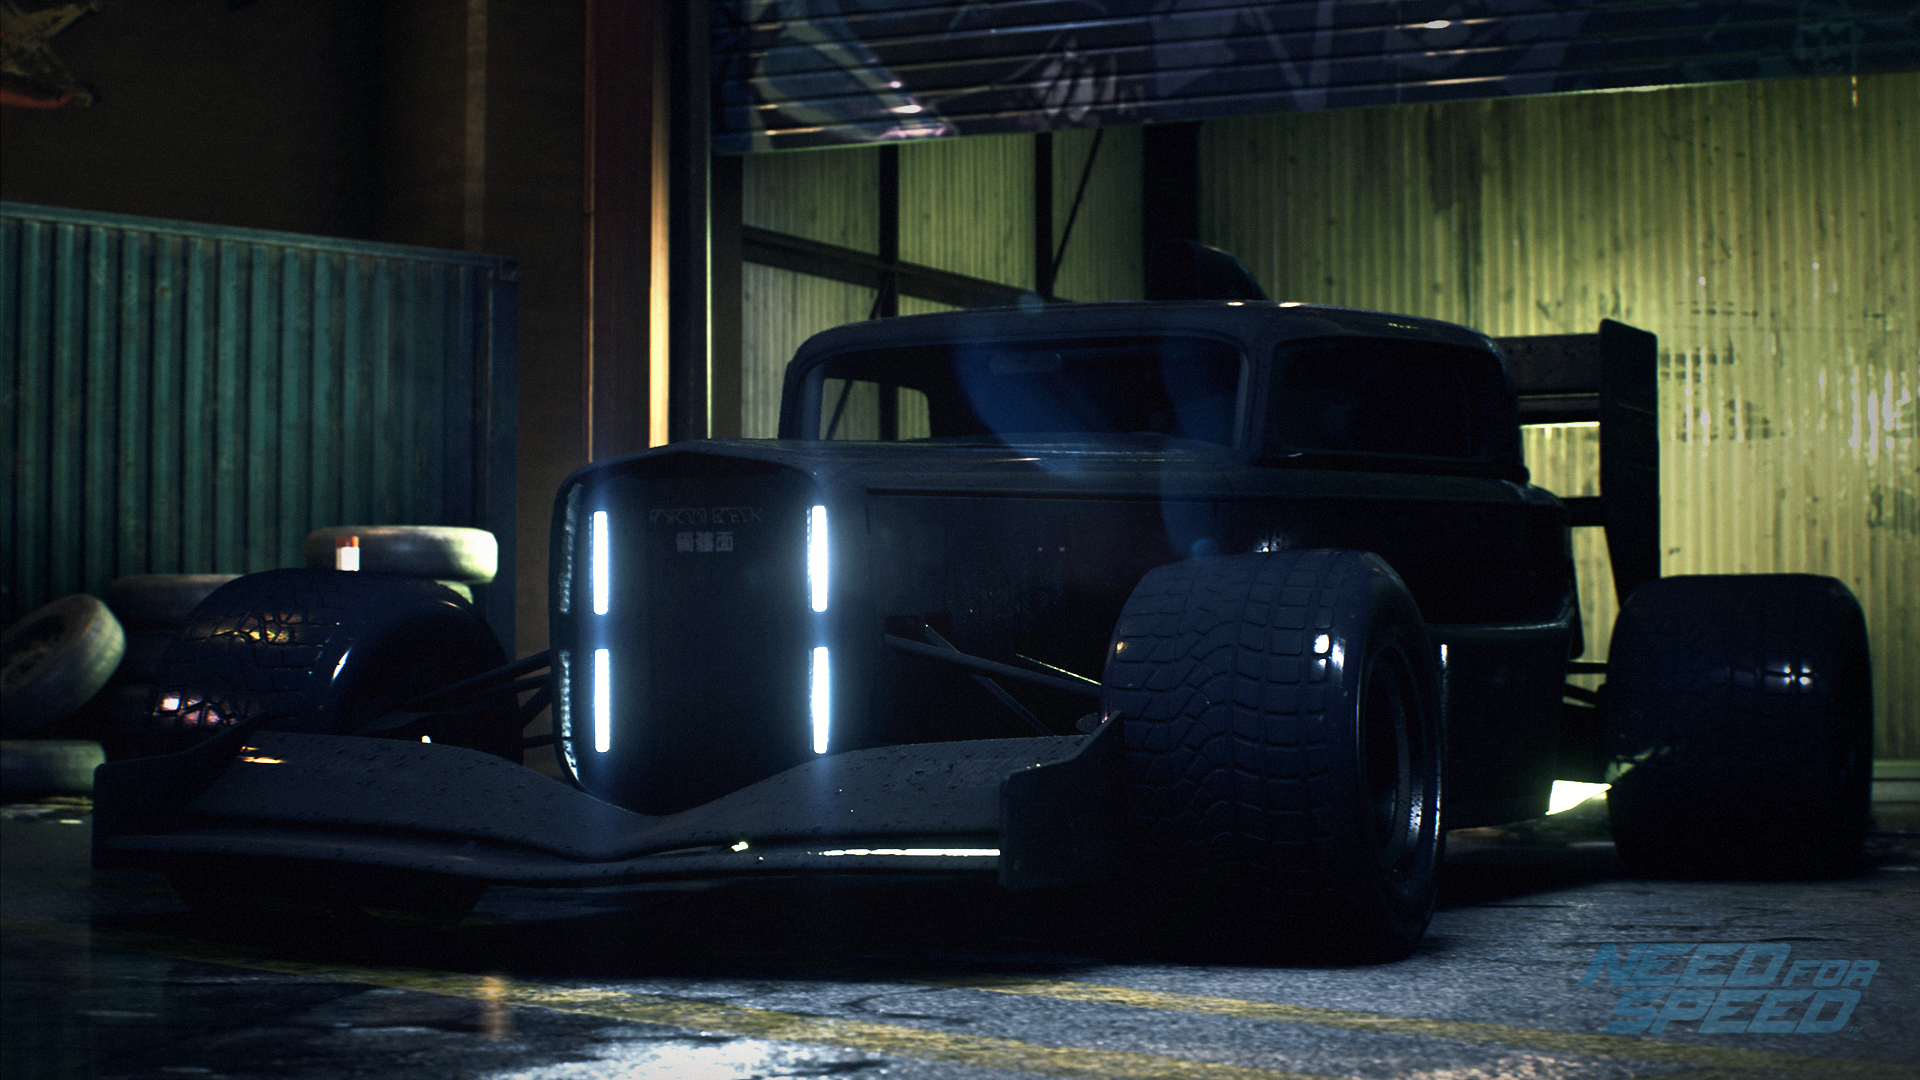 Beck kustoms f132 need for speed wiki fandom powered by wikia f132 malvernweather Gallery